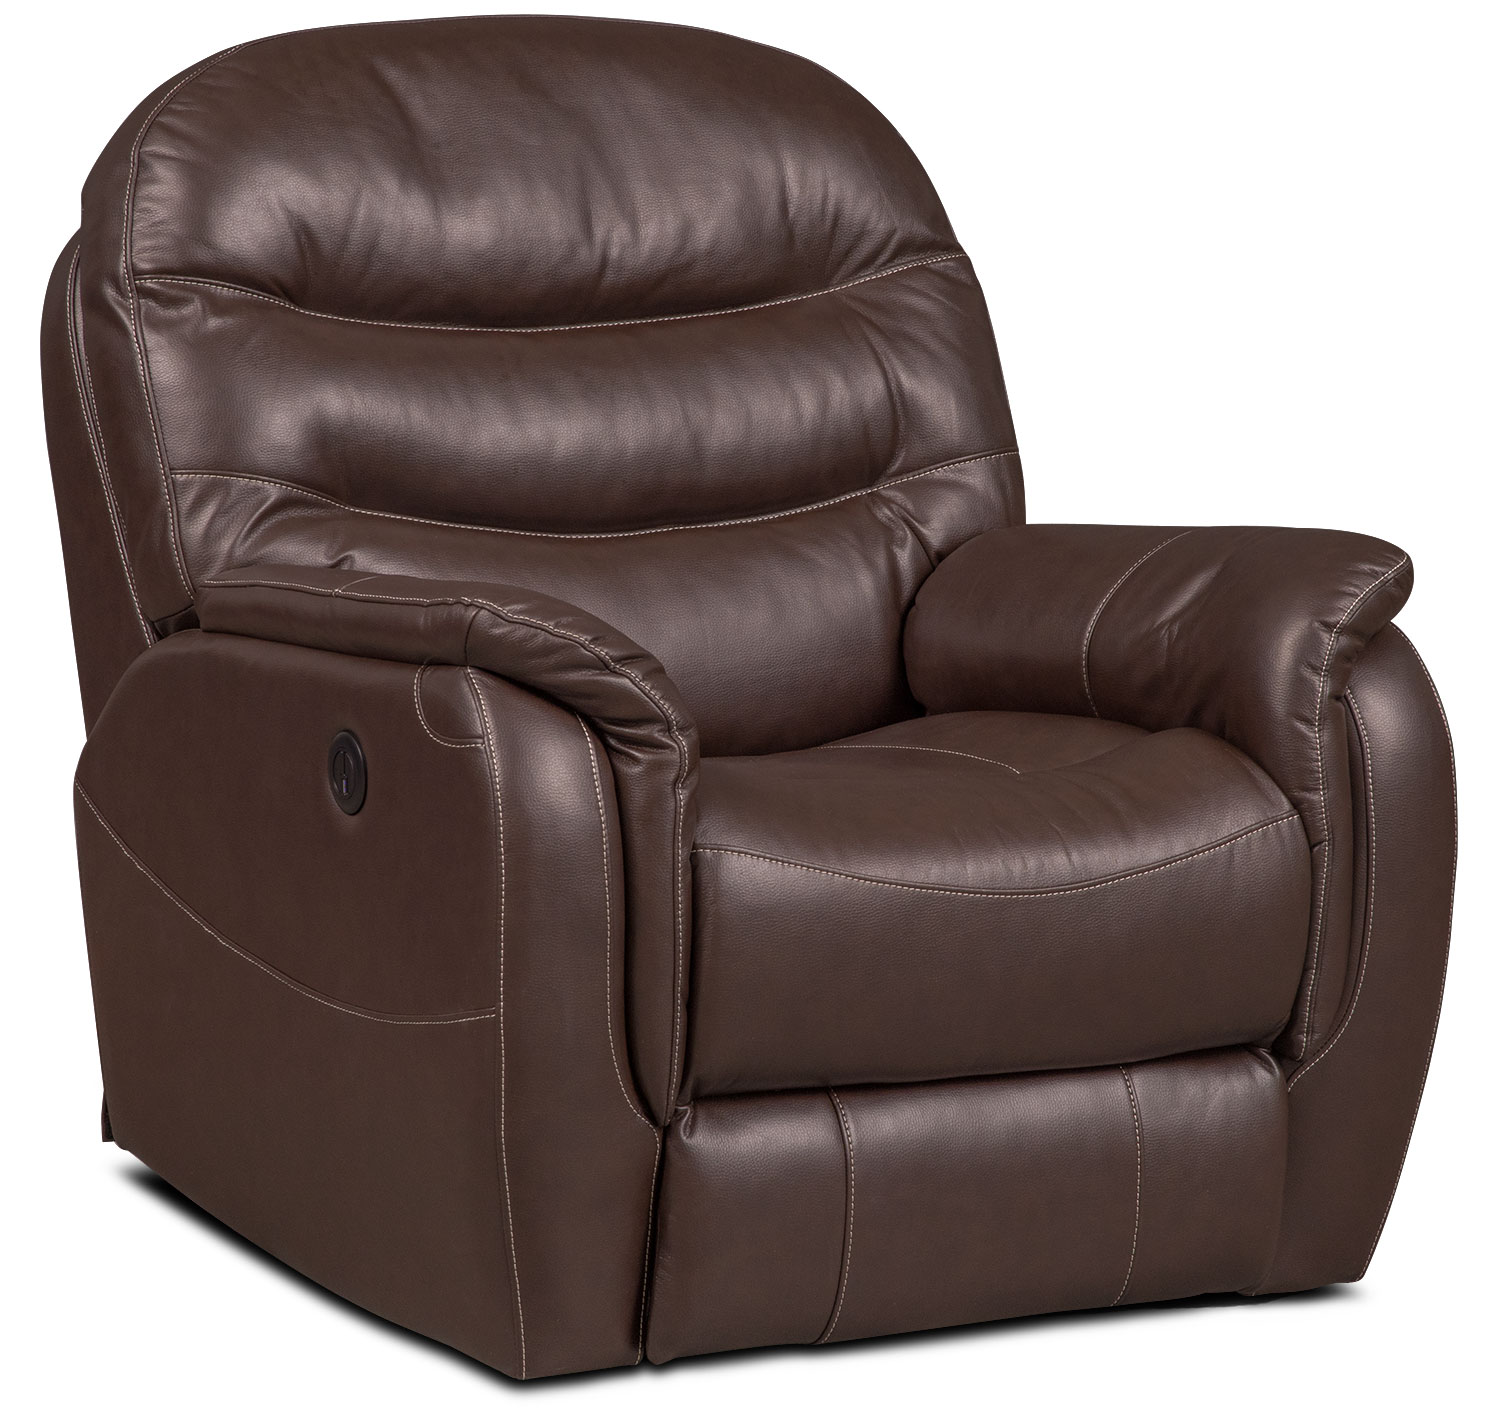 City Furniture Recliner Chairs